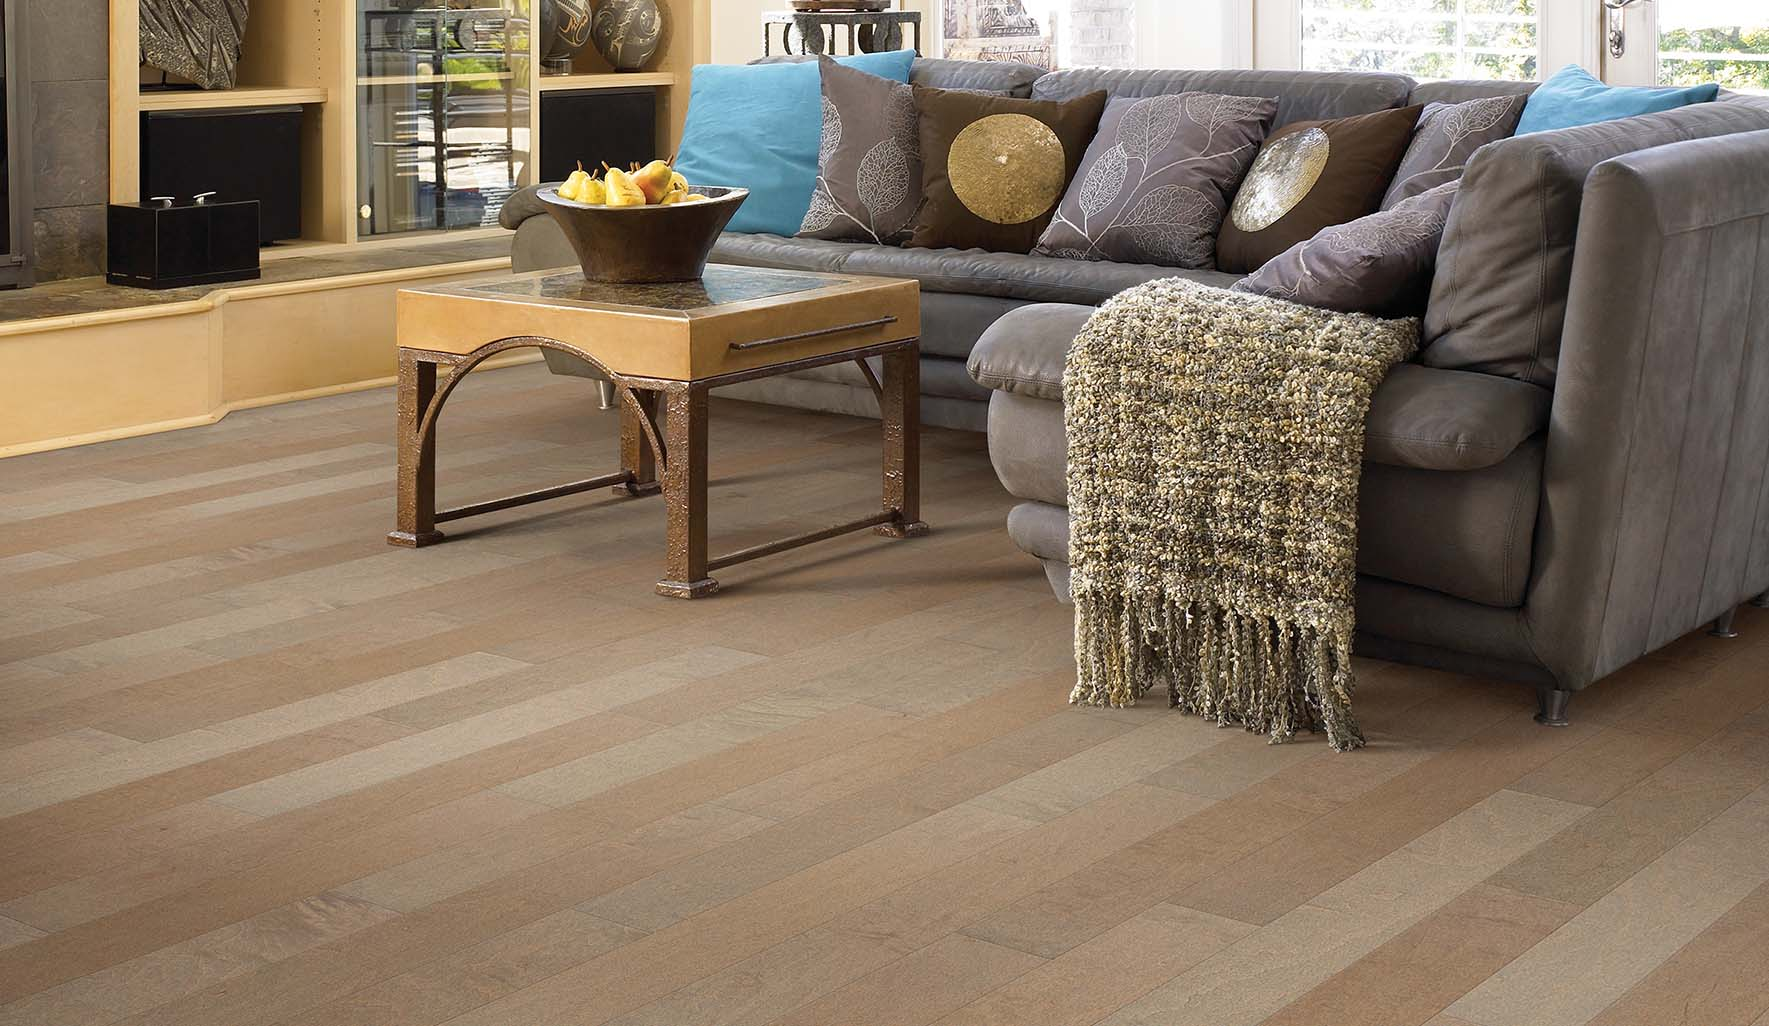 Carpeting Hardwood Tile Vinyl Flooring Von Tobel